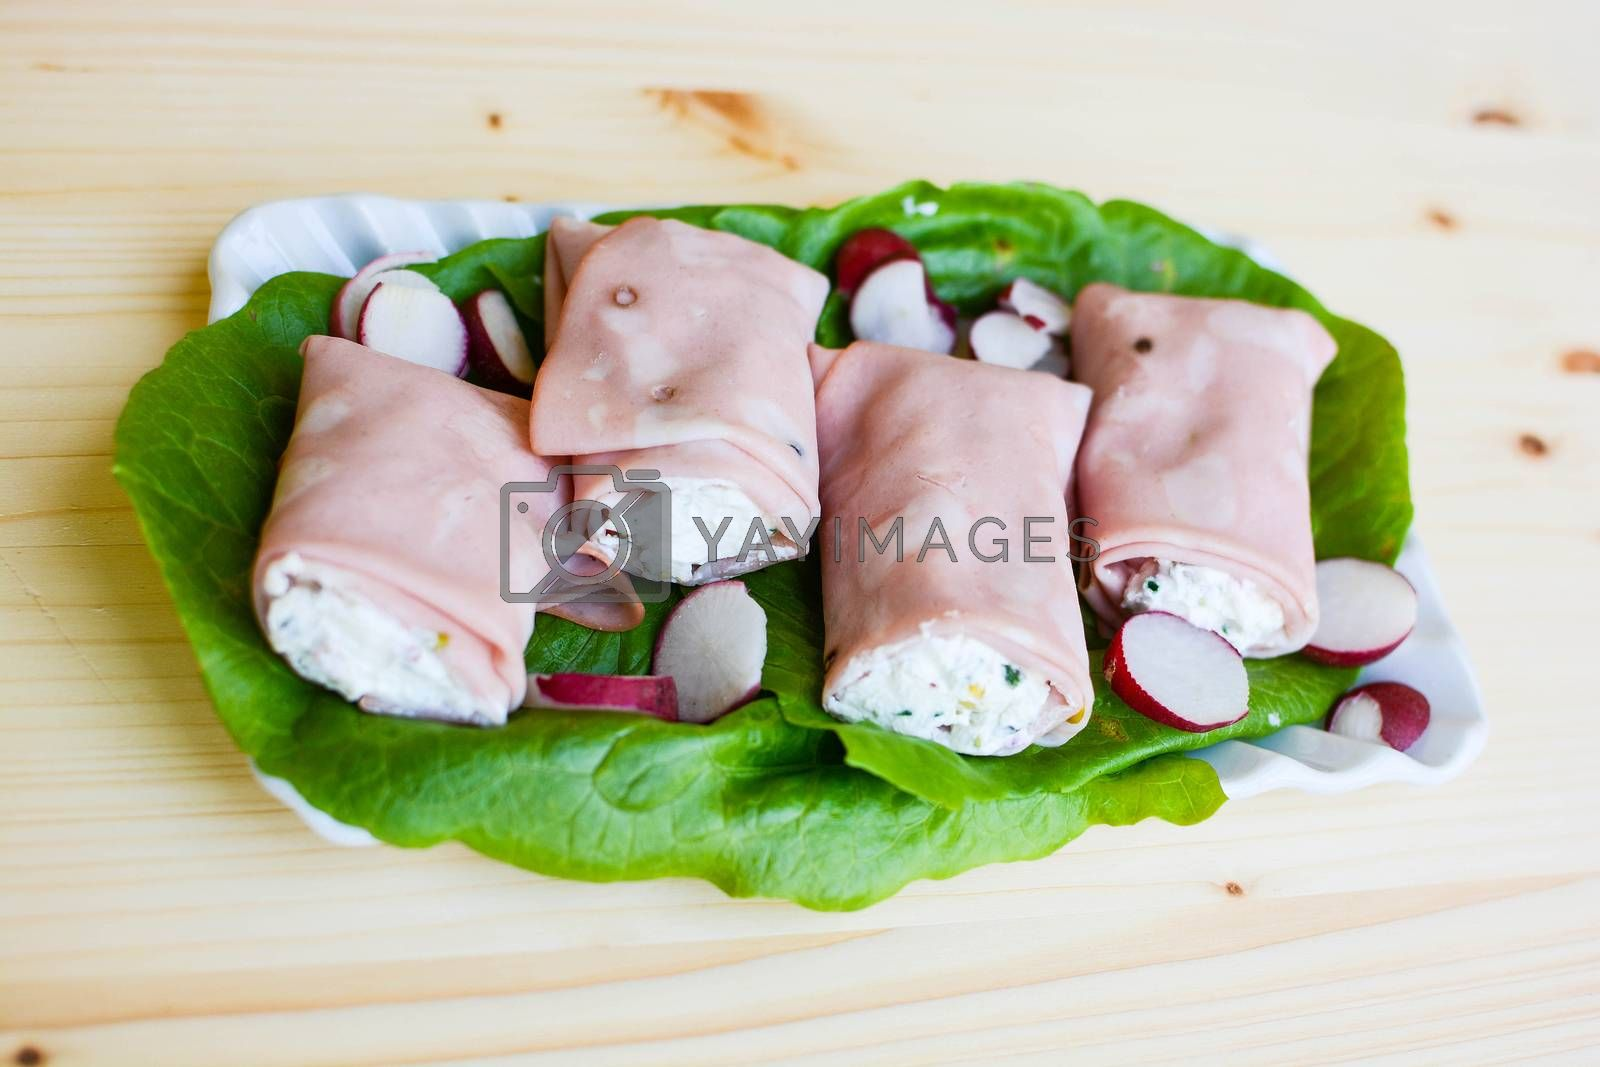 appetizer italian  mortadella rolls filled with ricotta and sesame